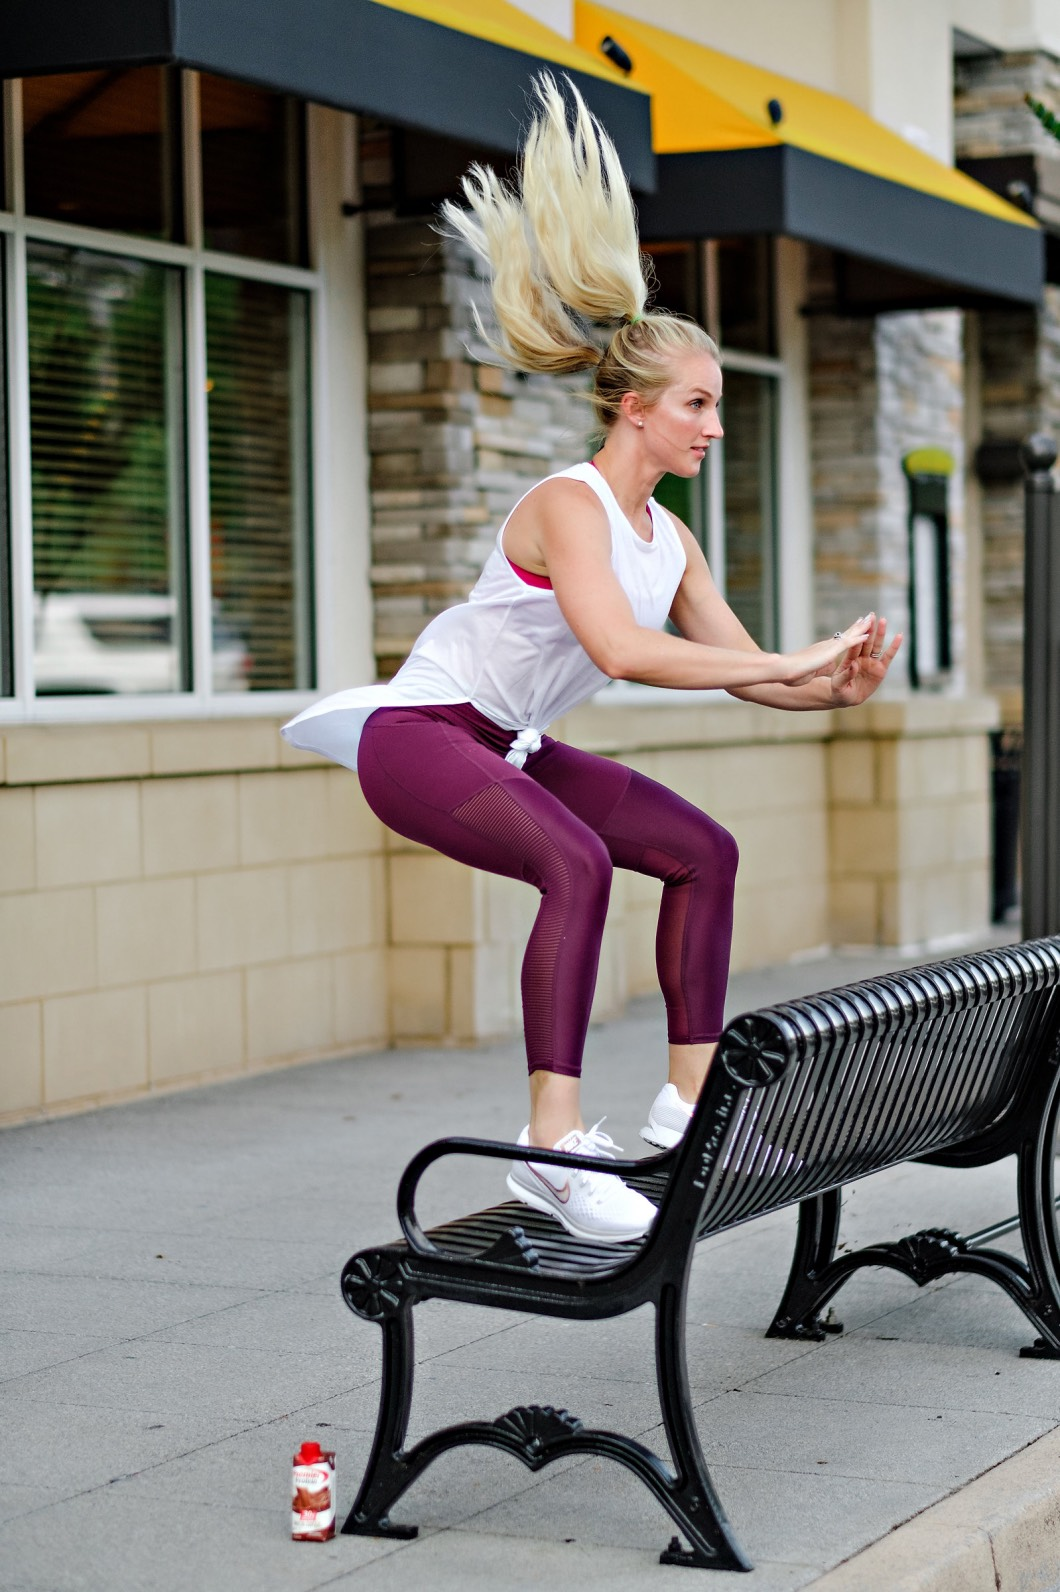 boxjumpsbuttworkout - Butt Workout You Can Do Anywhere by Atlanta fitness blogger Happily Hughes